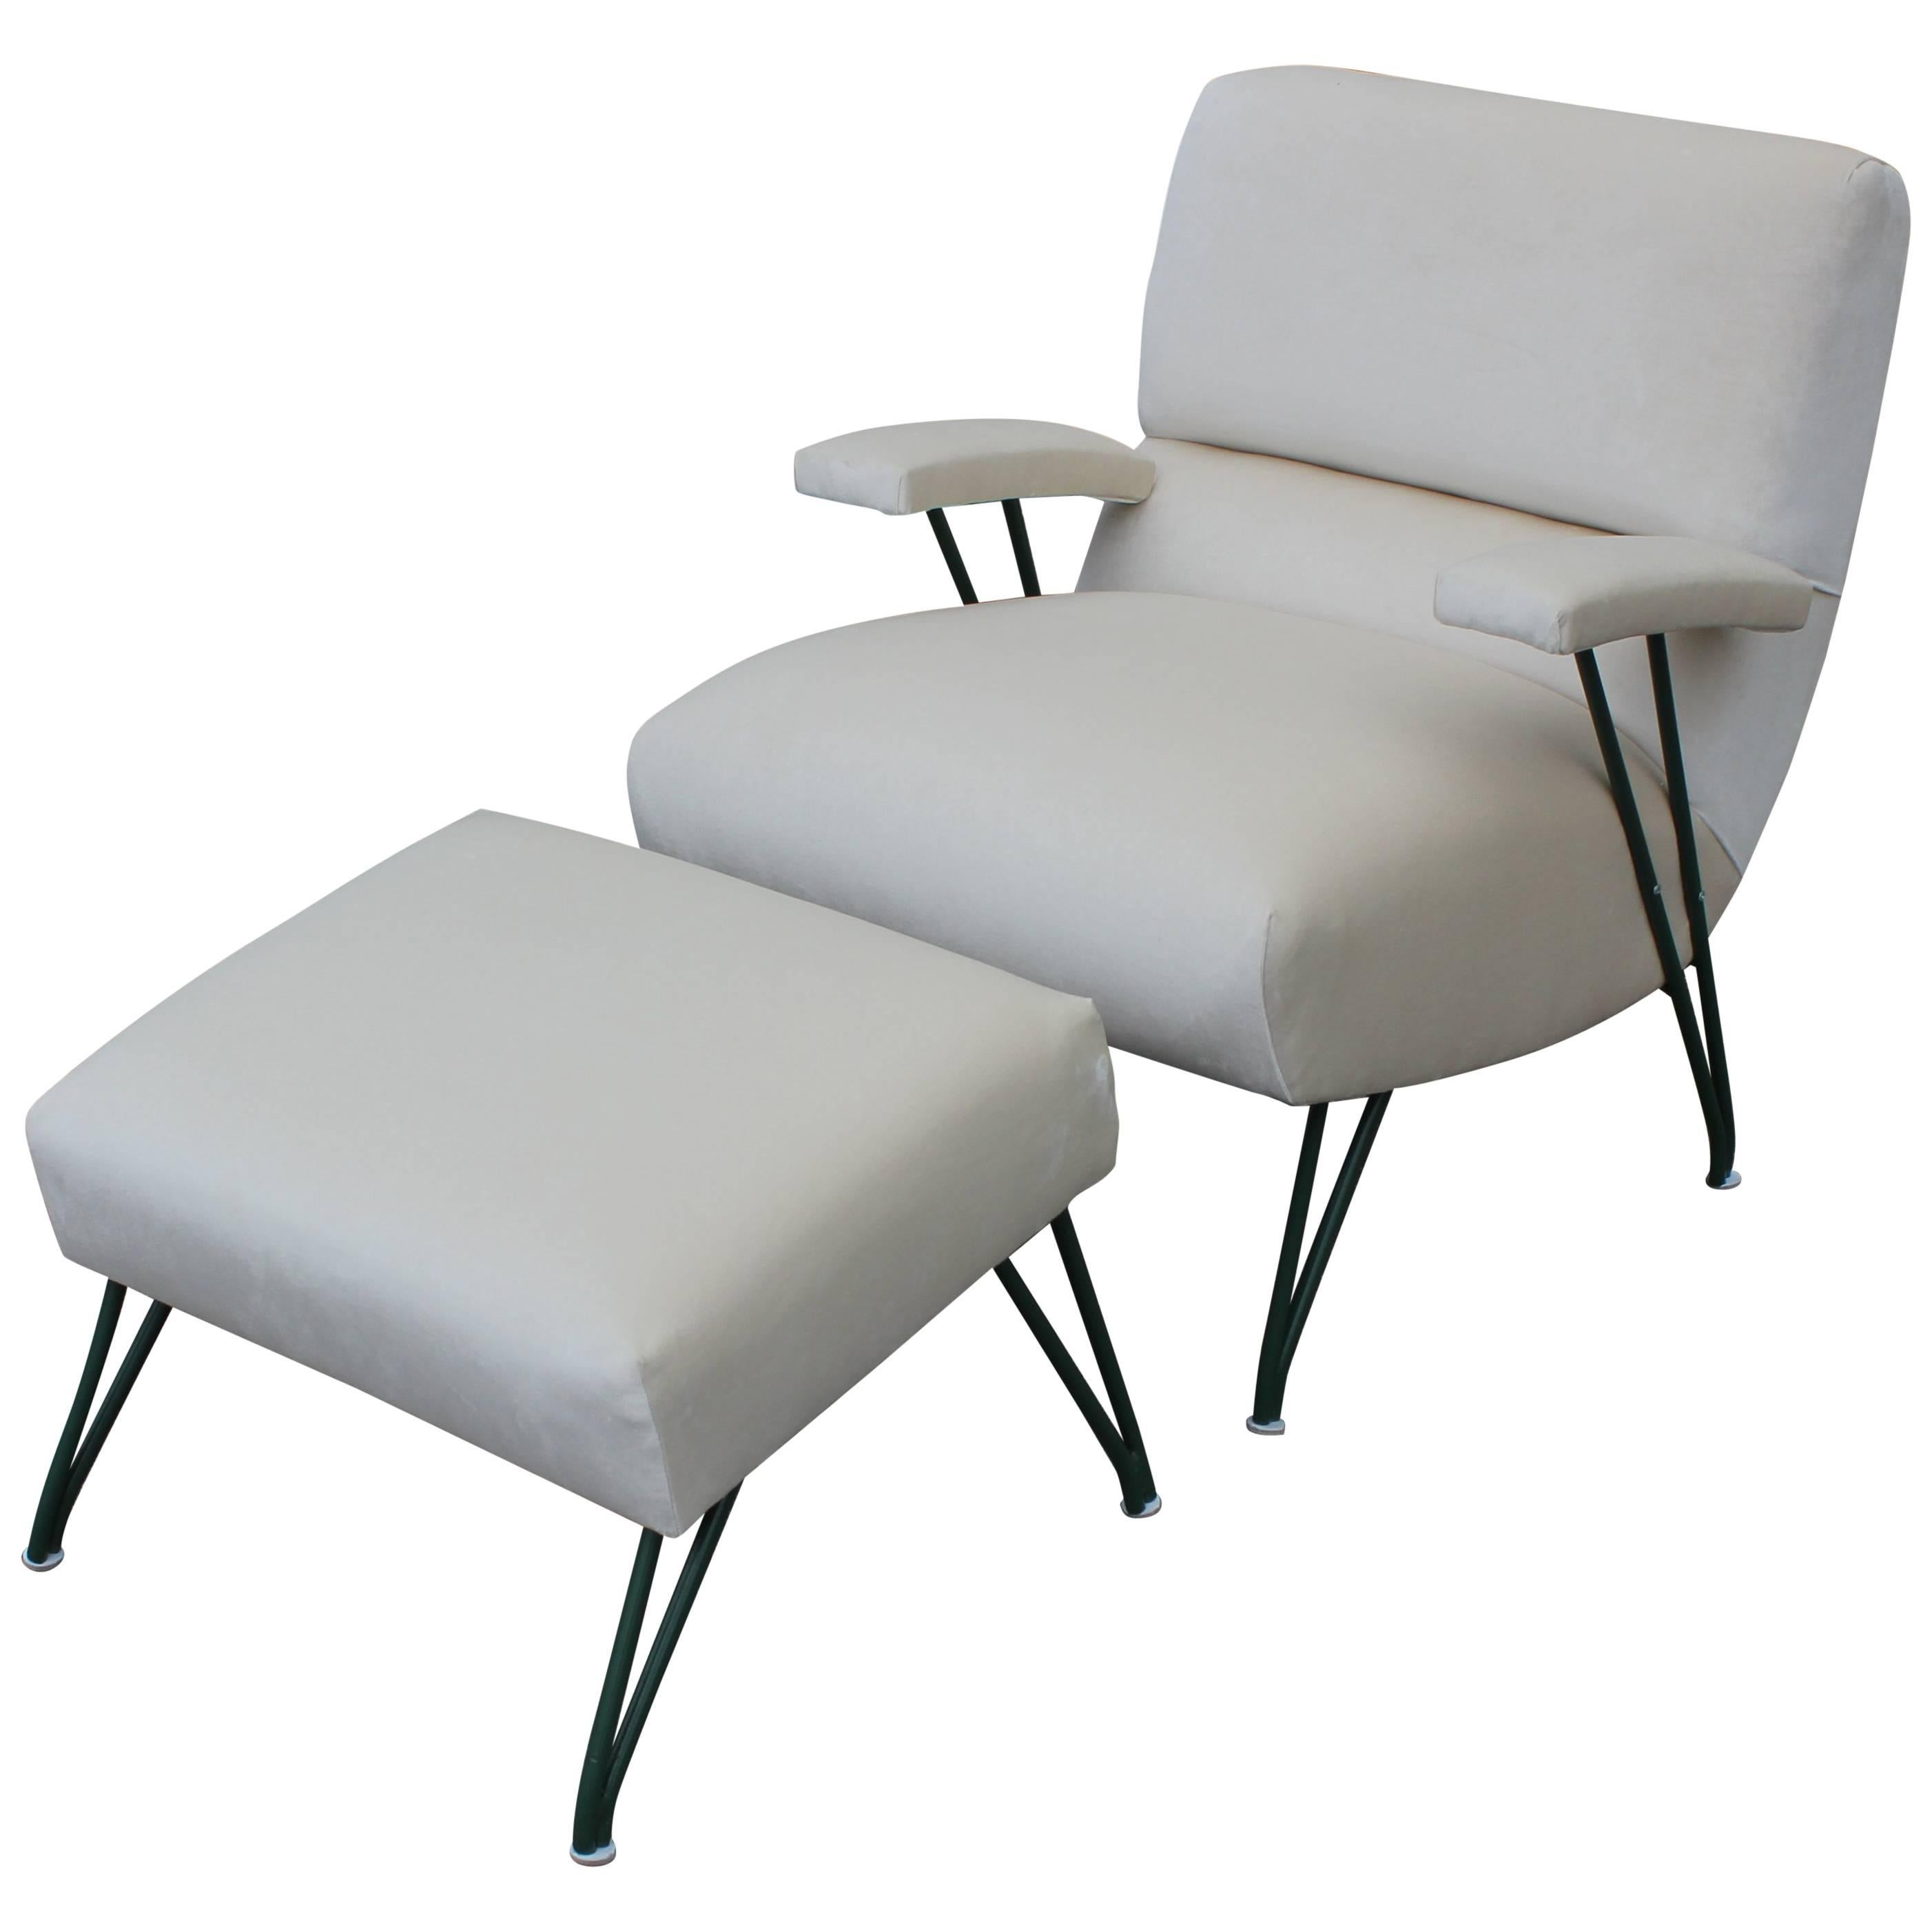 Modern California Style White Velvet Lounge Chair U0026 Ottoman With Green Iron  Legs For Sale